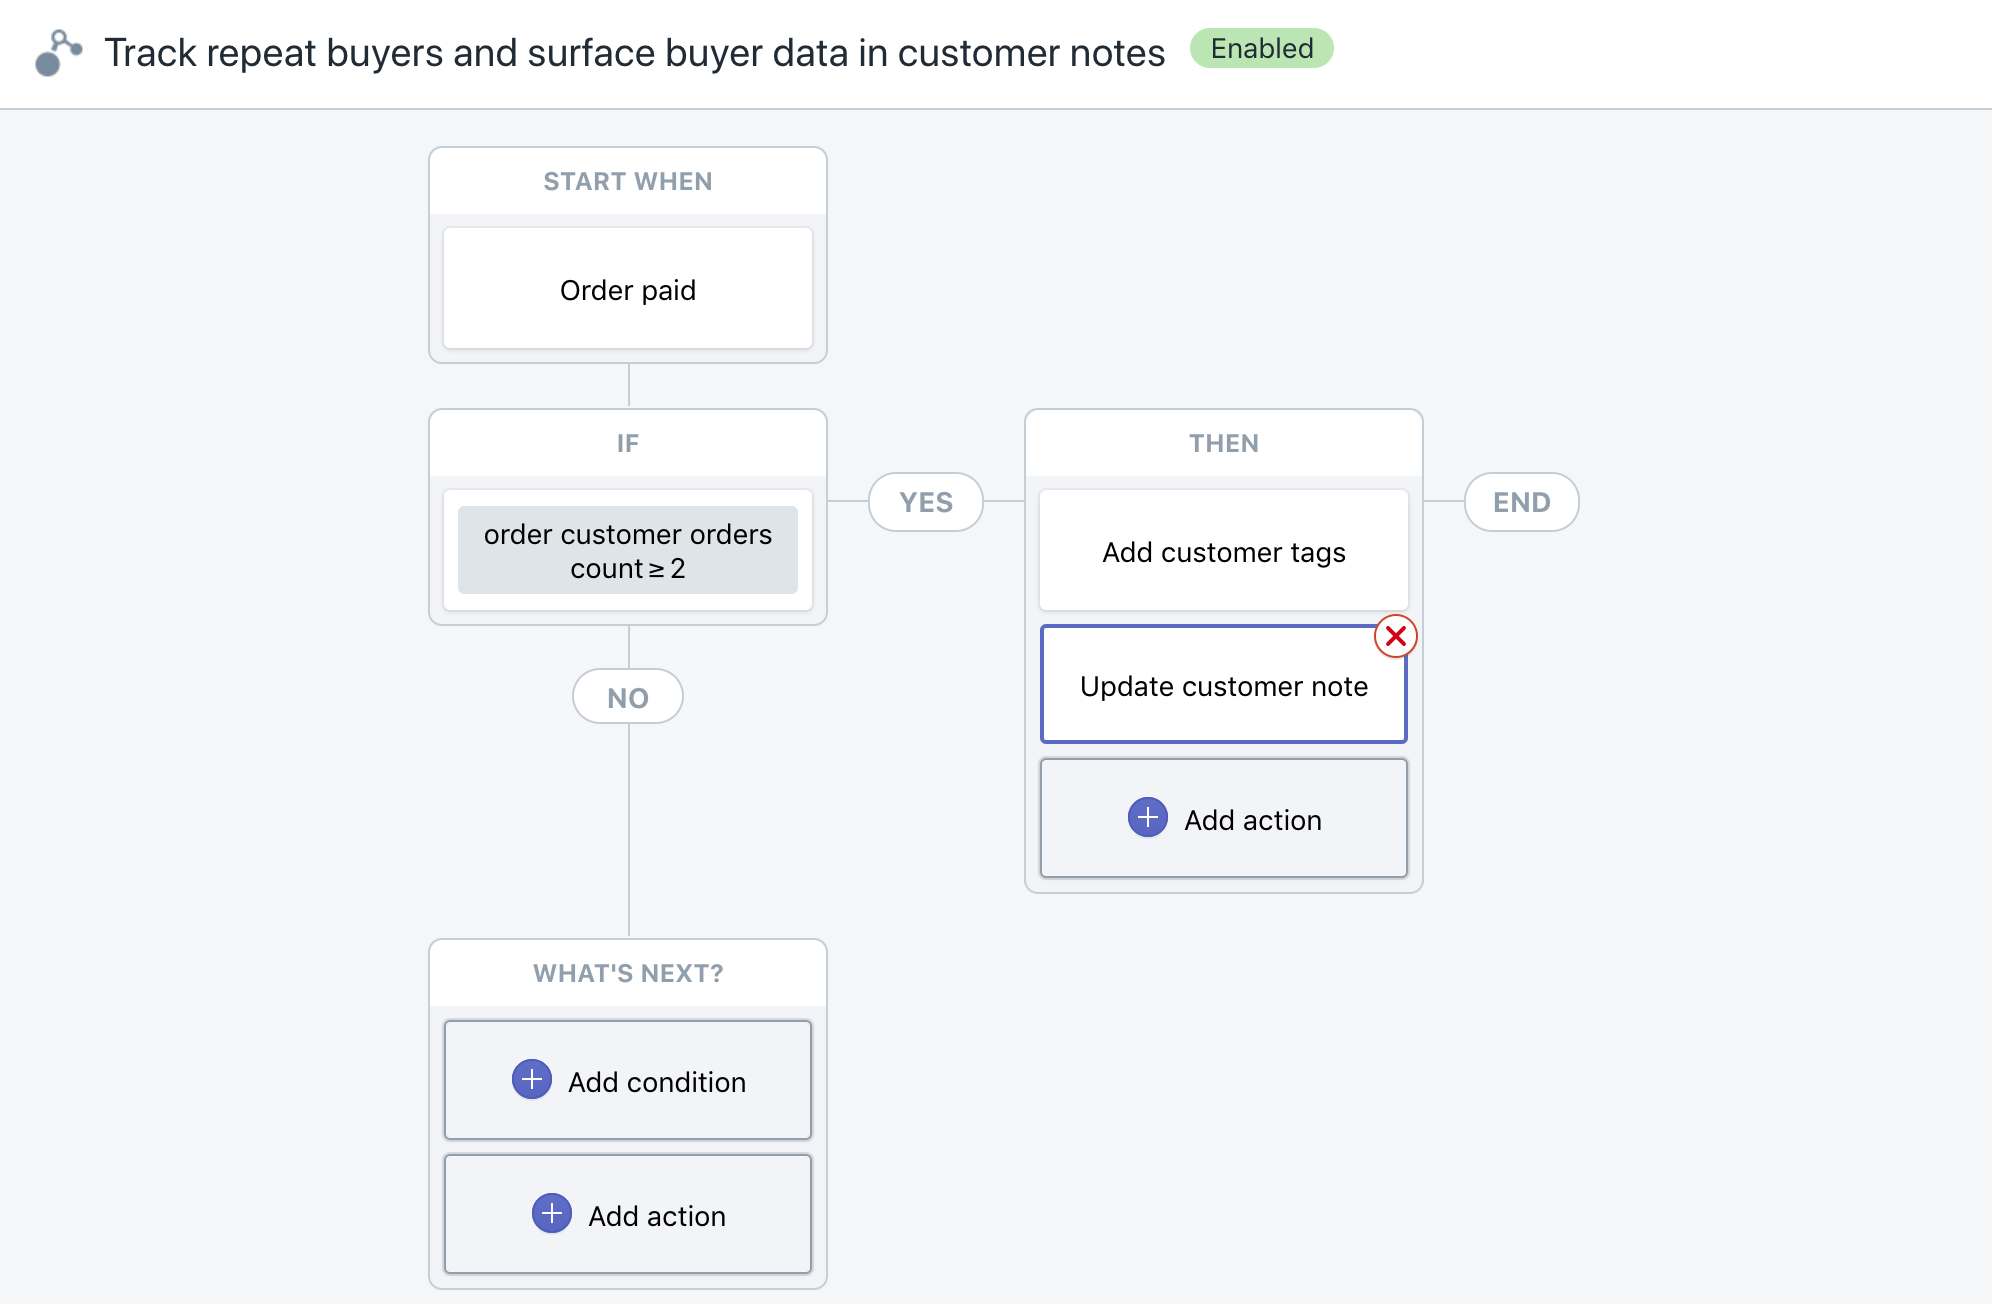 Ecommerce Automation Software: 14 Shopify Flow Workflow Templates